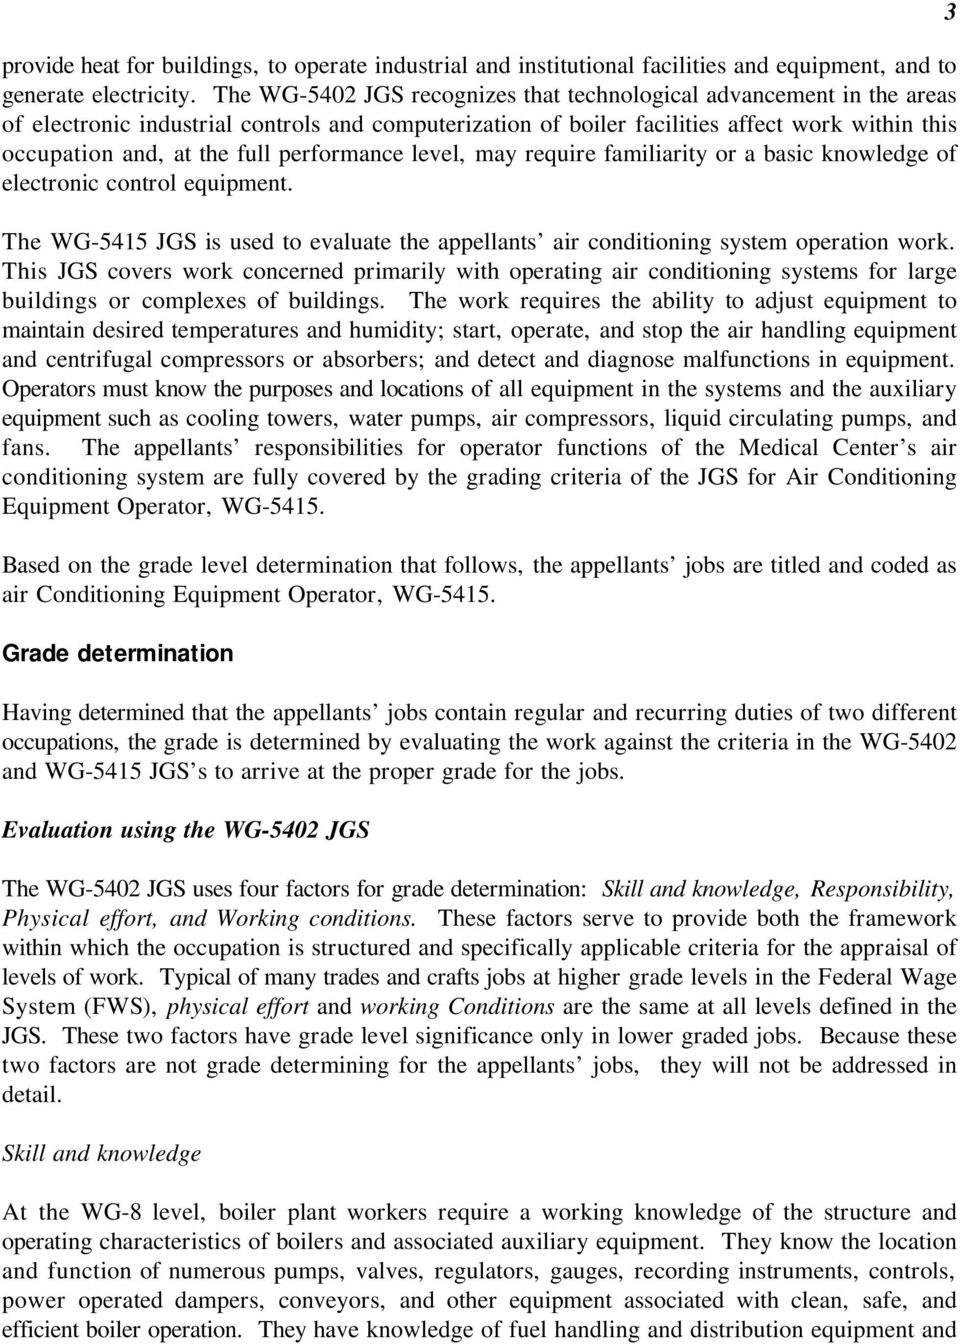 performance level, may require familiarity or a basic knowledge of electronic control equipment. The WG-5415 JGS is used to evaluate the appellants air conditioning system operation work.